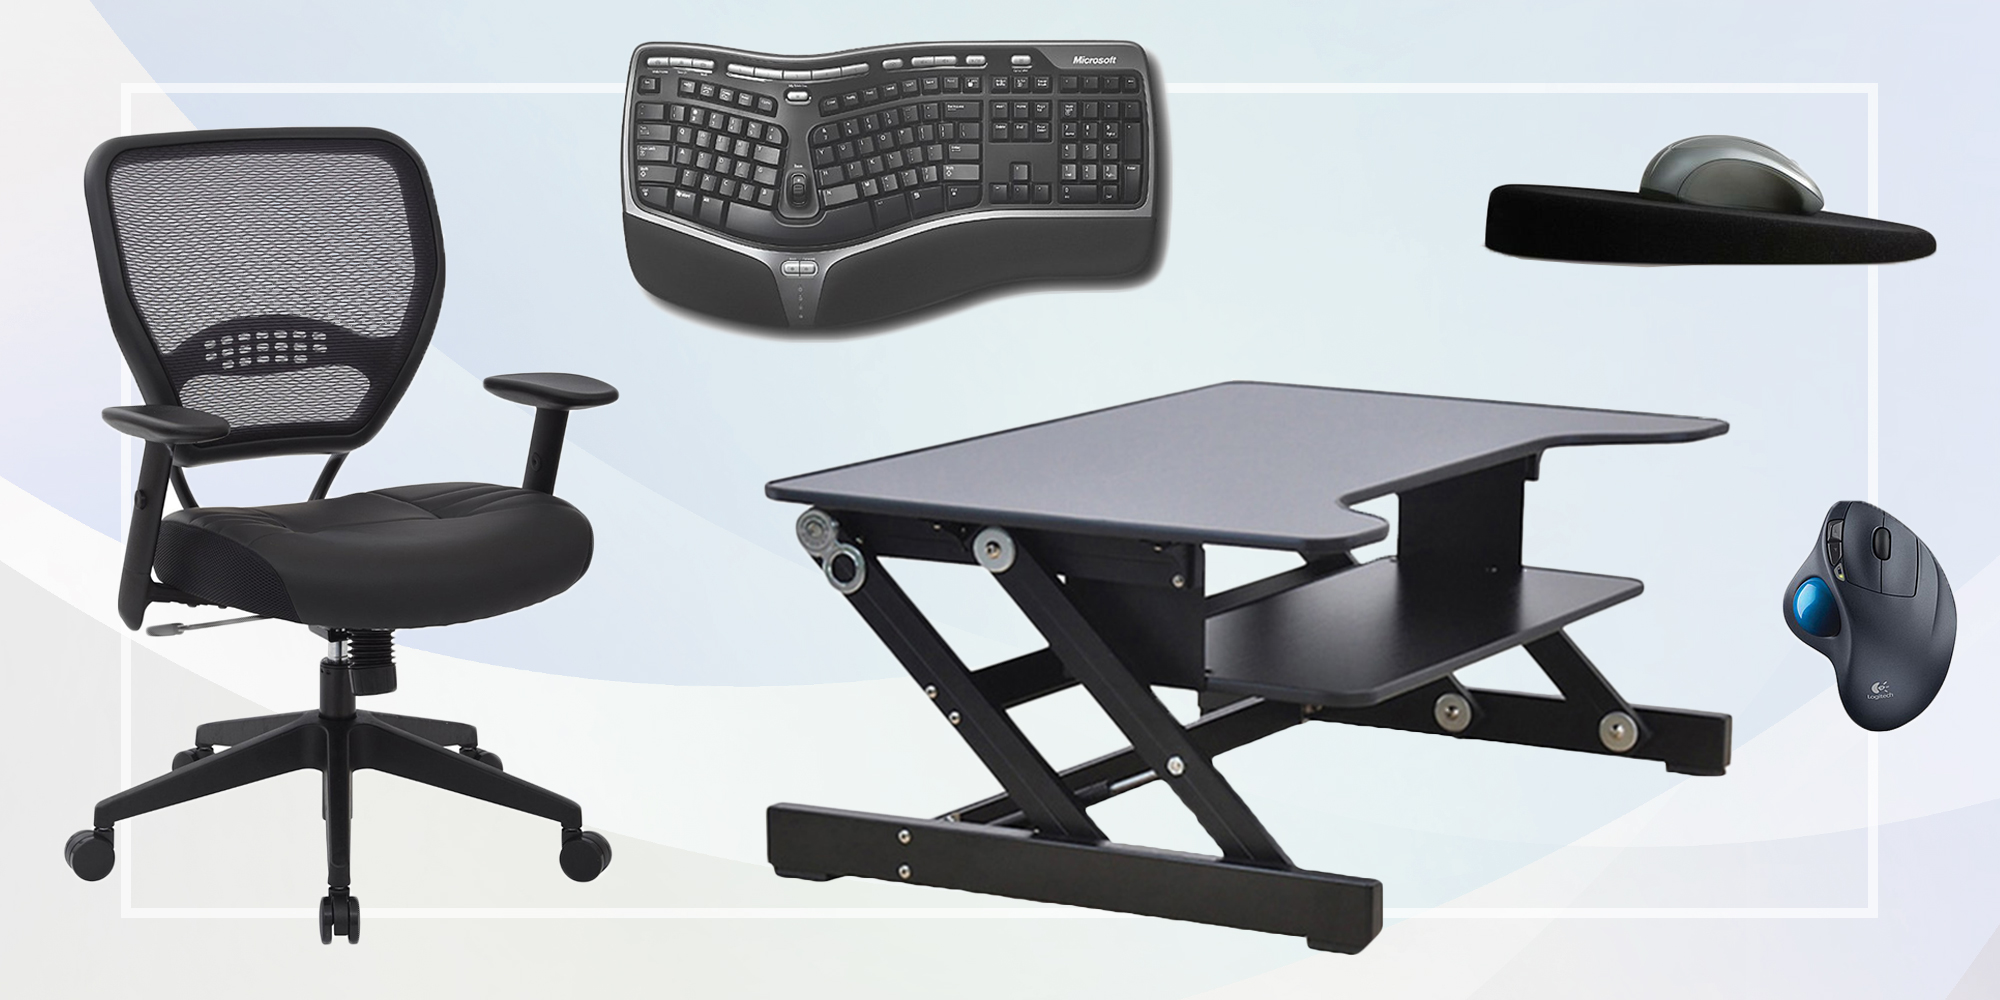 25 Best Ergonomic Furniture 2018 Ergonomic Office Chairs Keyboards And More